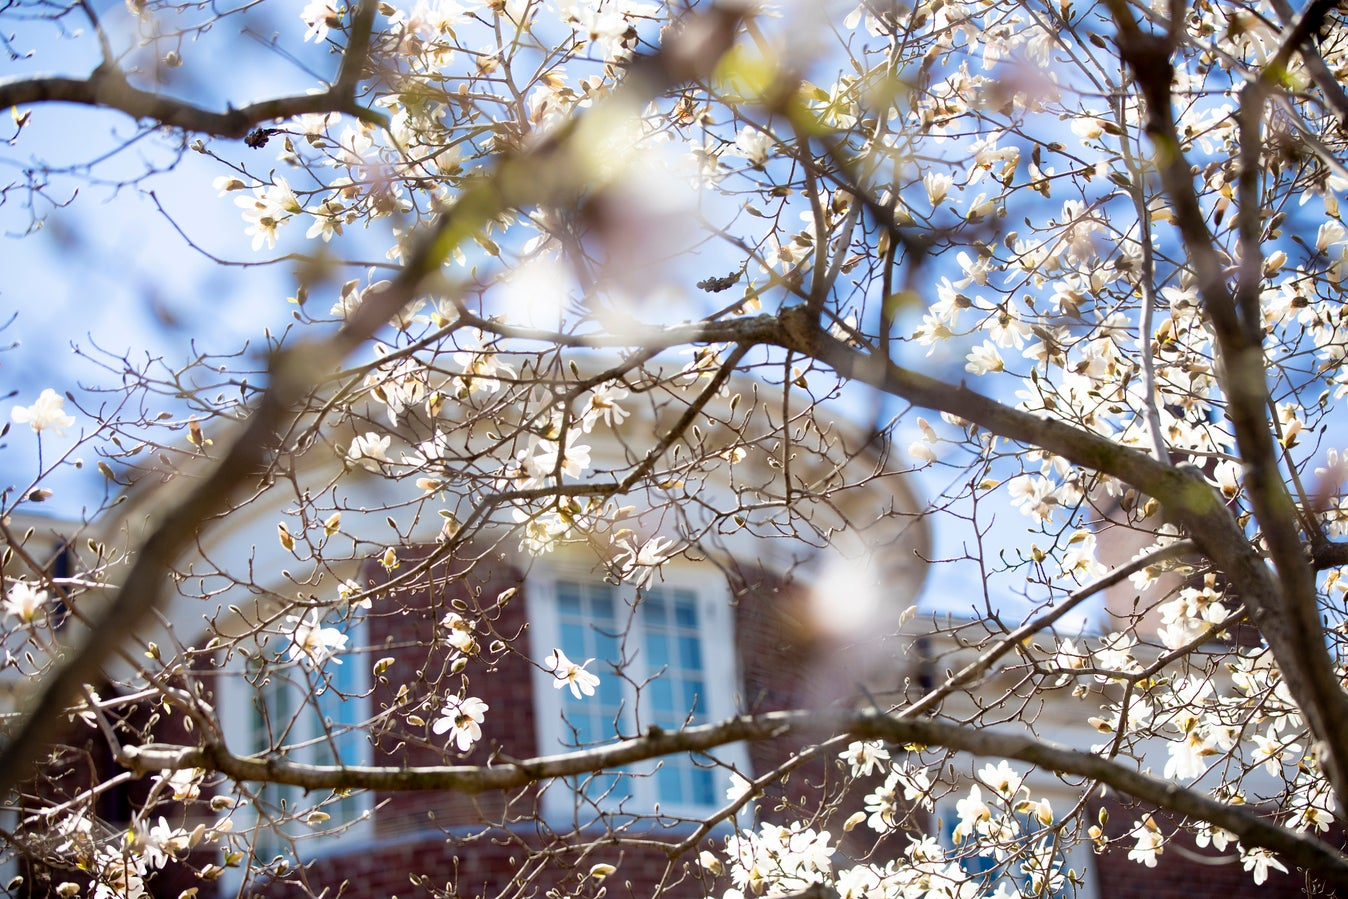 Brick building seen through blossoming trees.